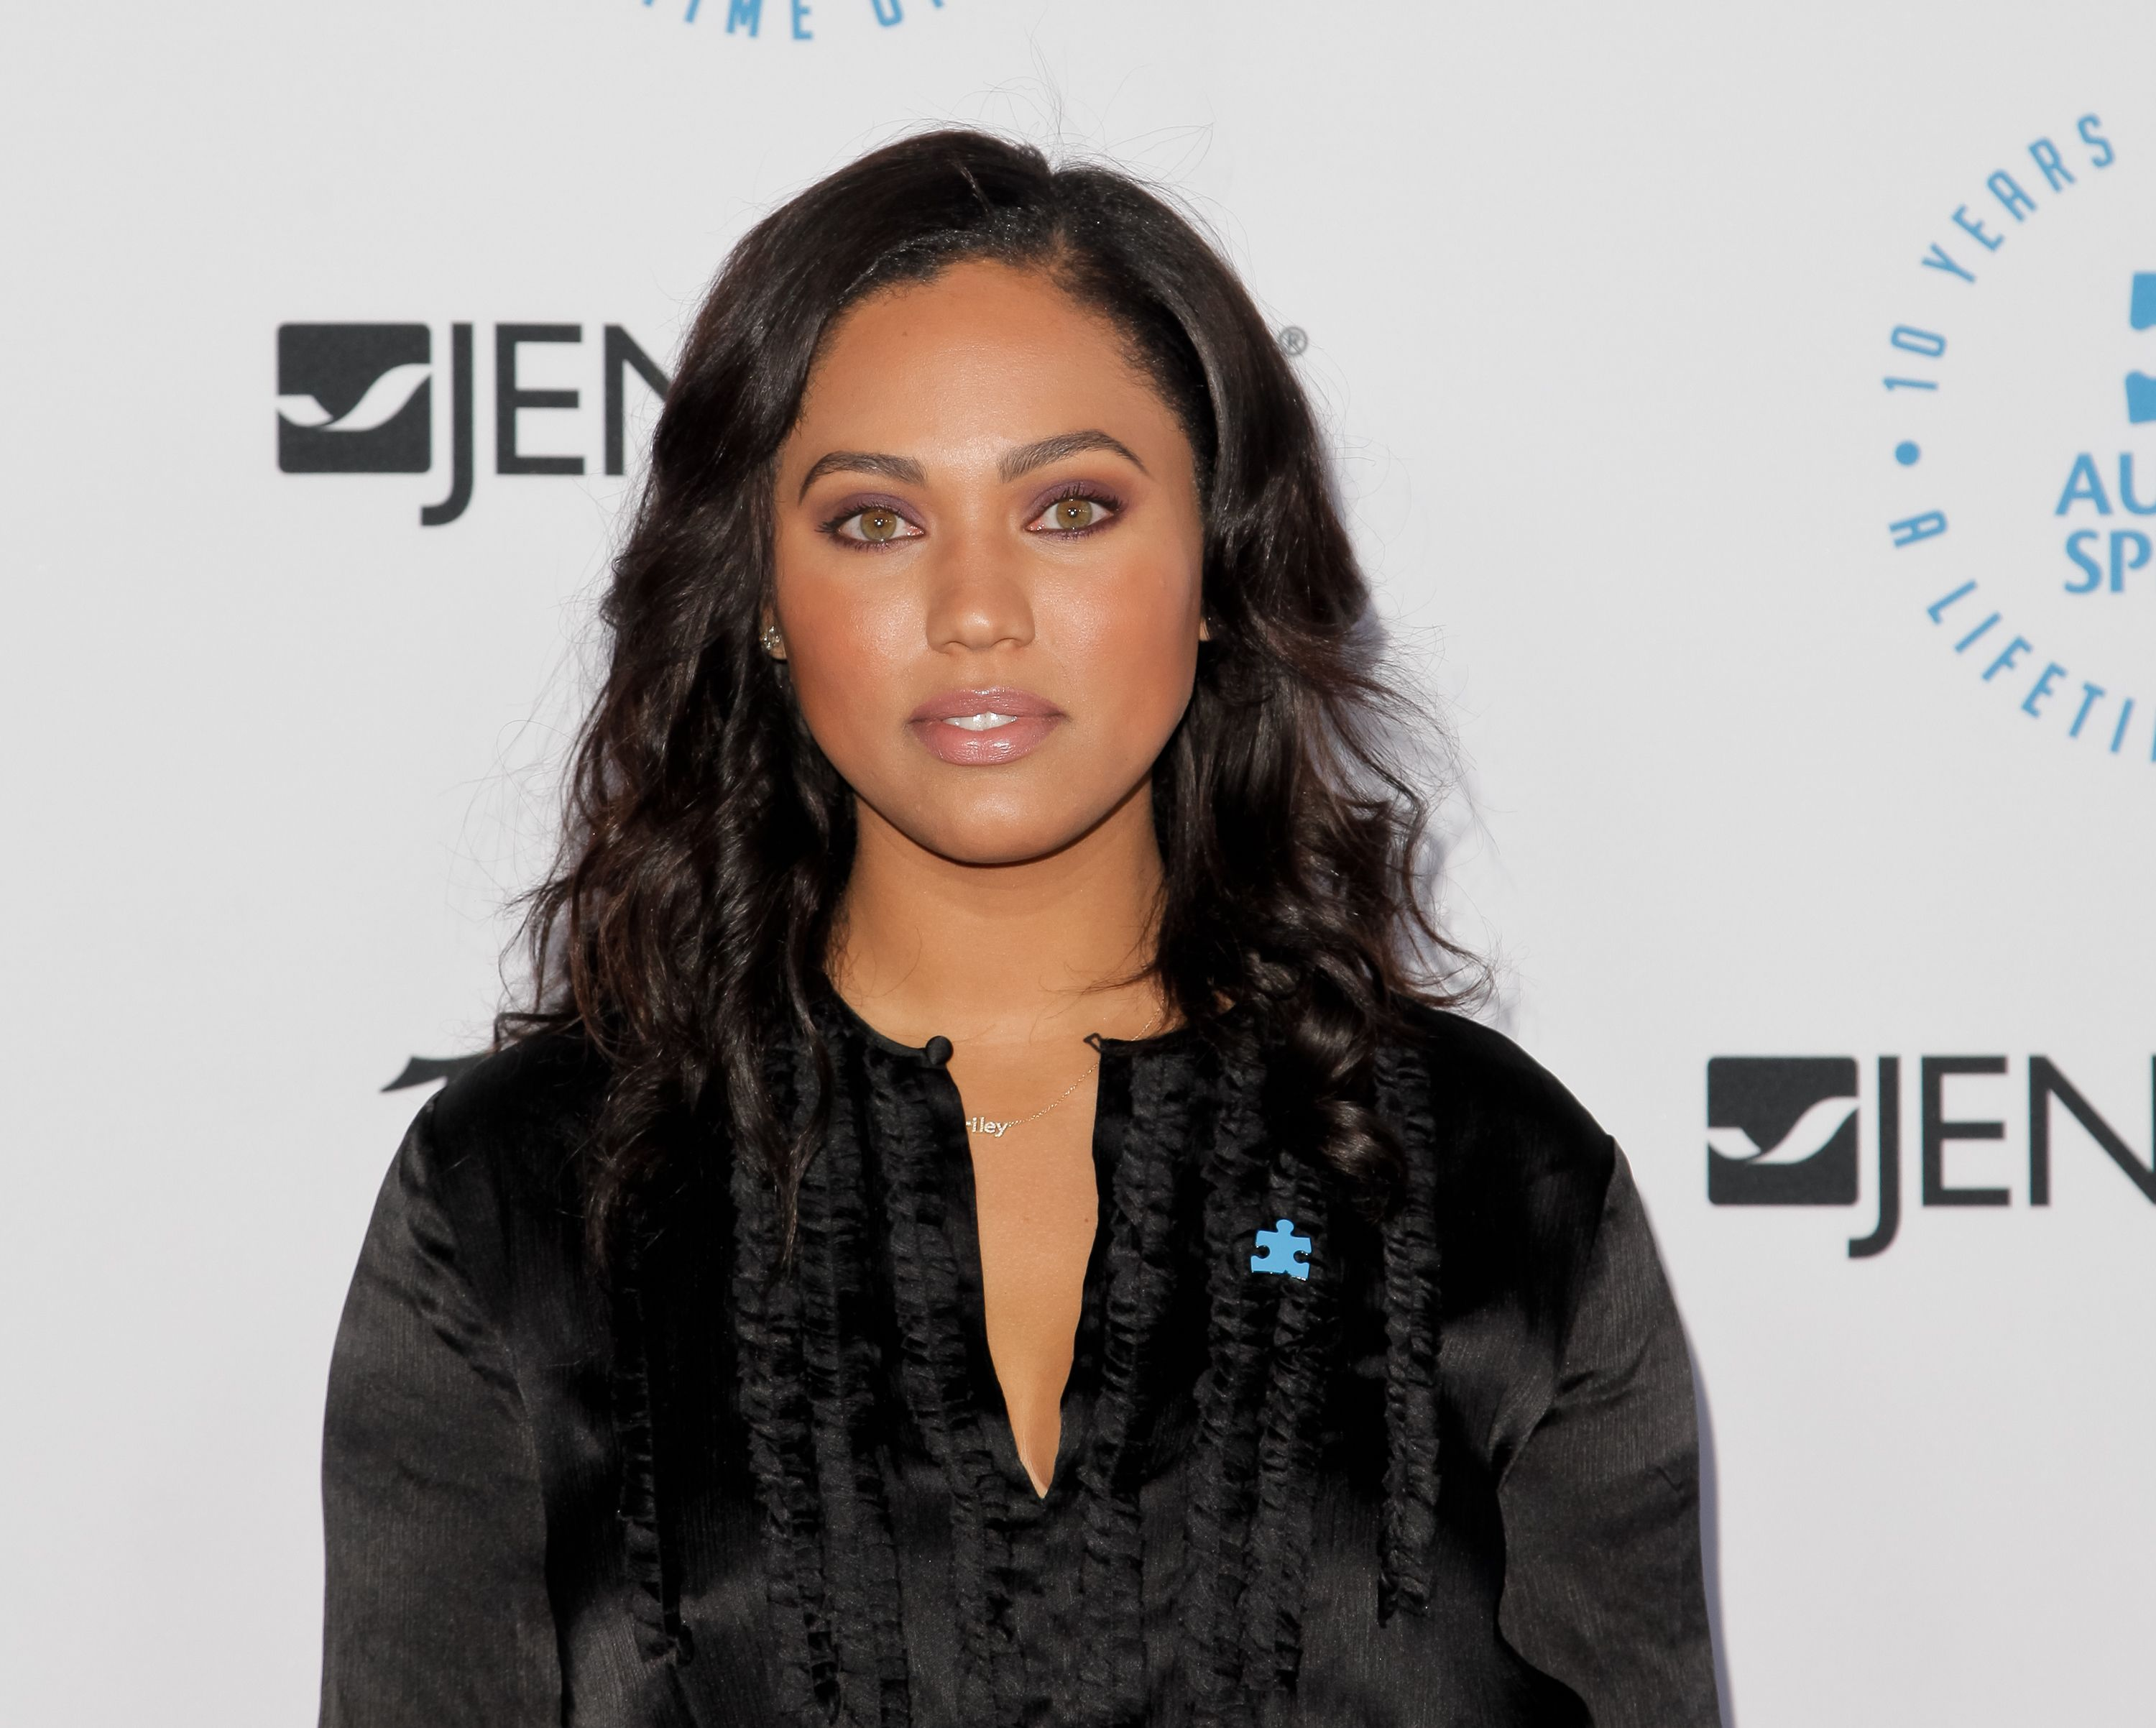 Ayesha Curry at the Autism Speaks to Los Angeles Celebrity Chef Gala at Barker Hangar on October 8, 2015 | Photo: Getty Images